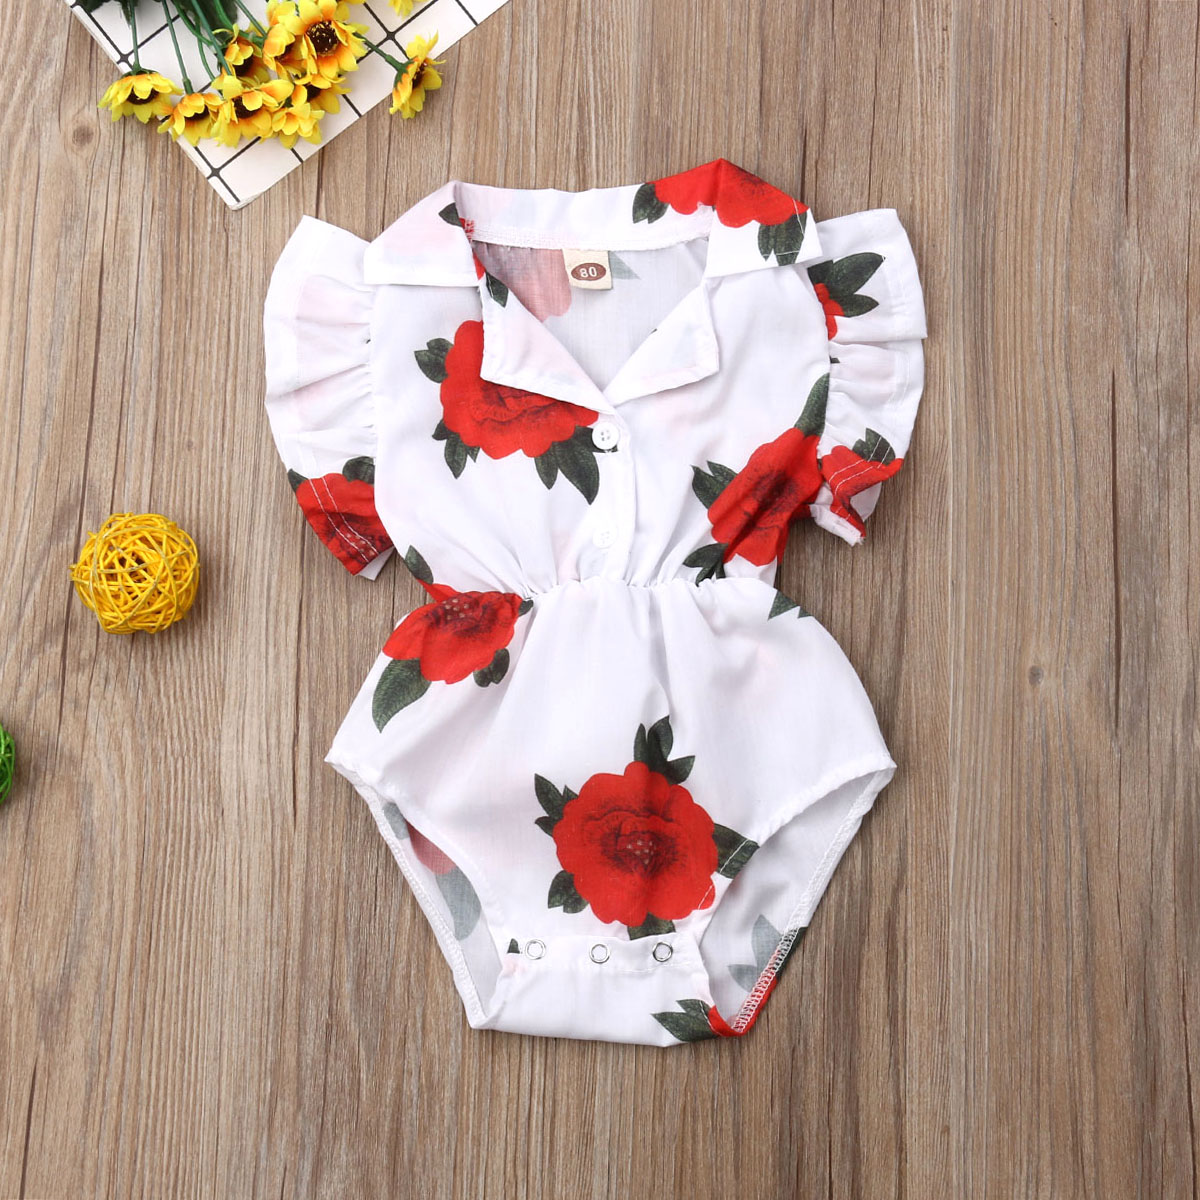 Pudcoco Summer Newborn Baby Girl Clothes Rose Print Ruffle Romper Jumpsuit One-Piece Outfit Sunsuit Clothes